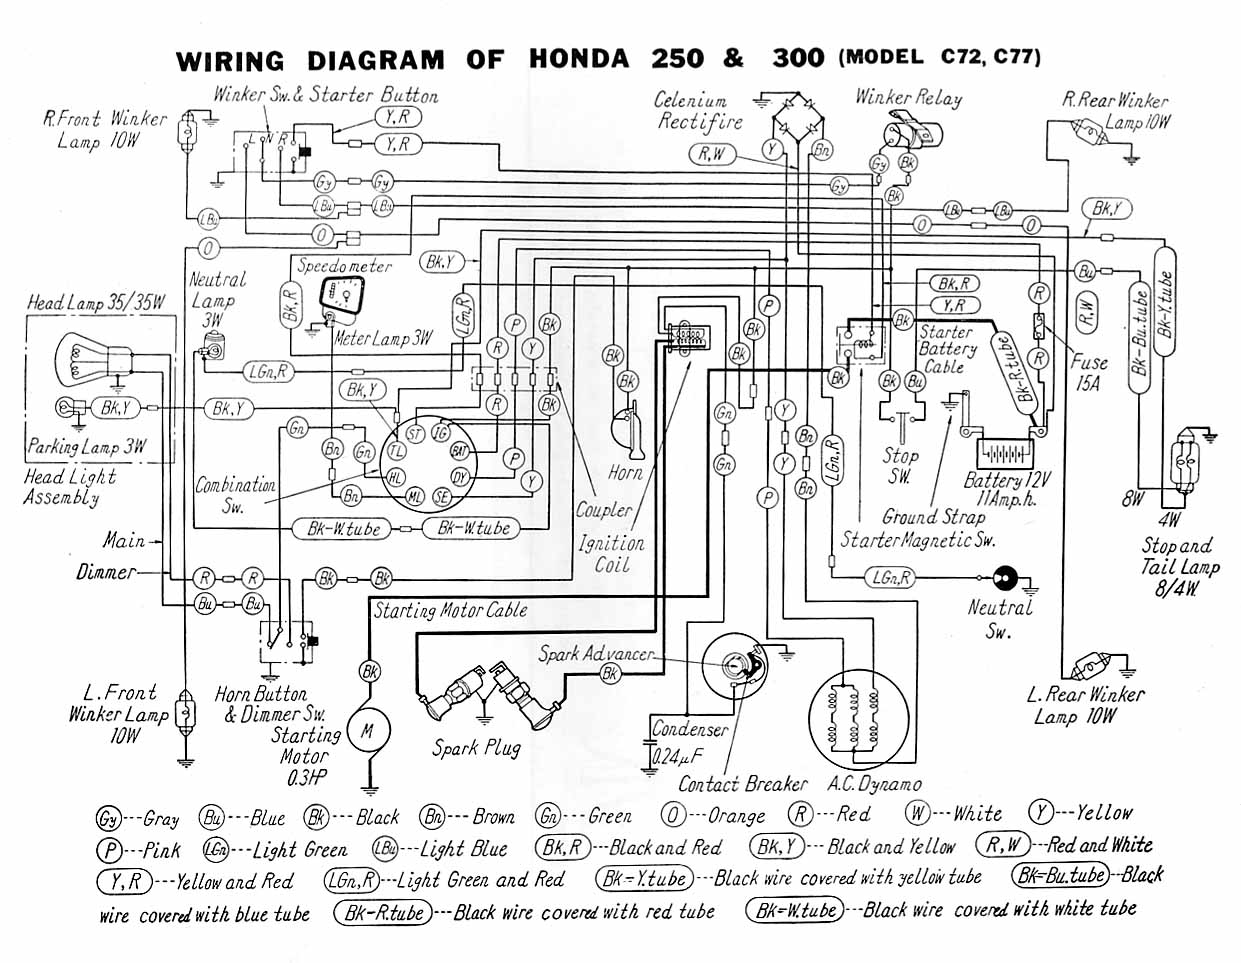 Wiring Diagrams Honda Ct 90 K 1 Diagram C77